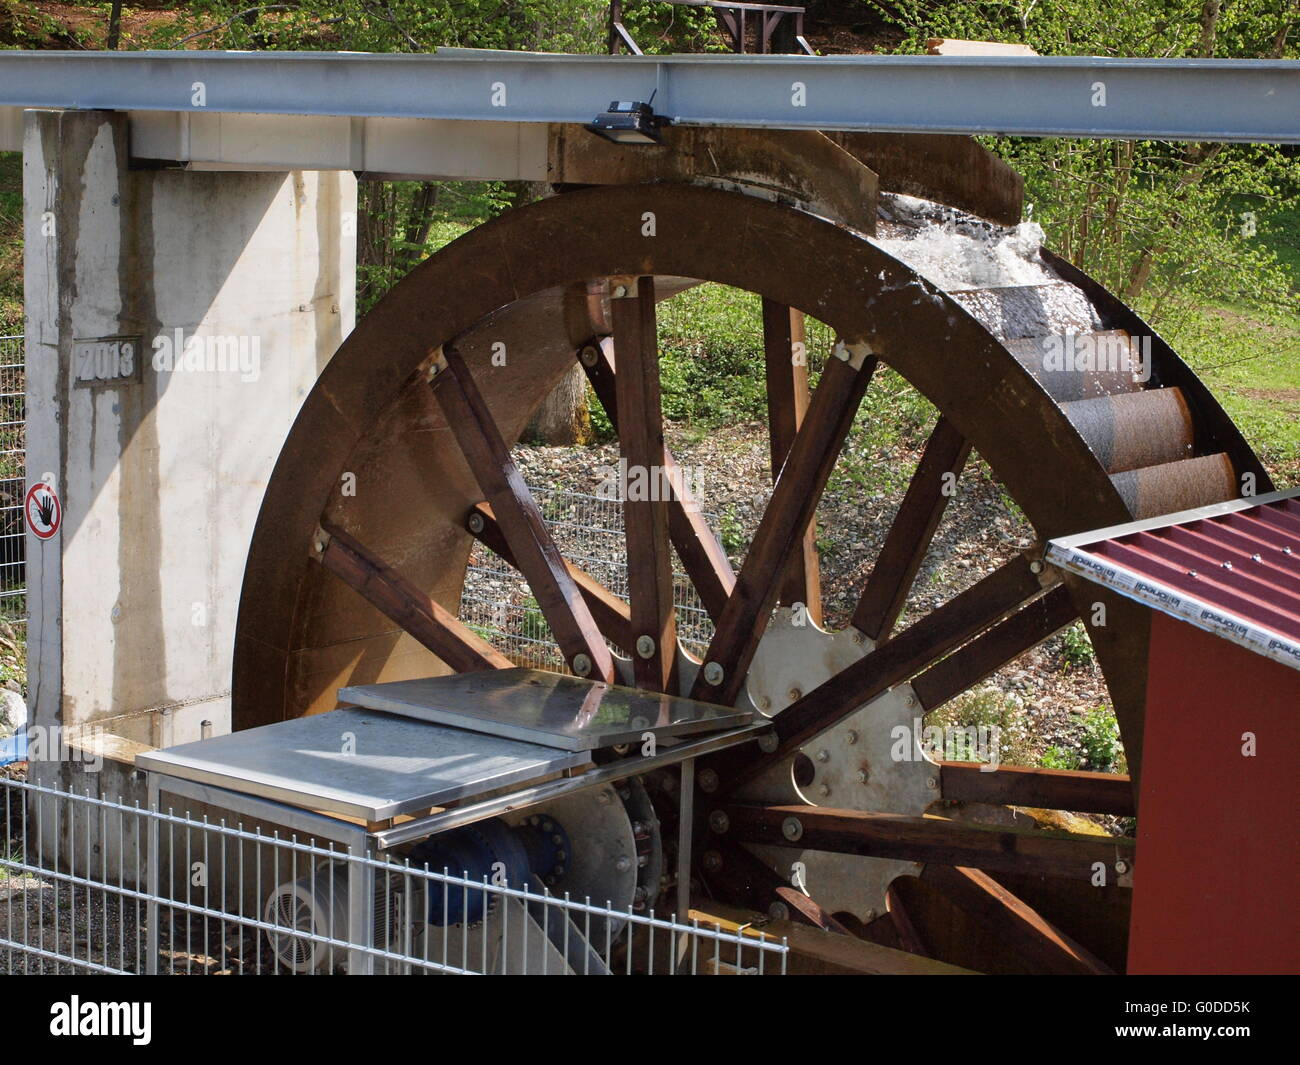 Waterwheel to generate electricity - Stock Image